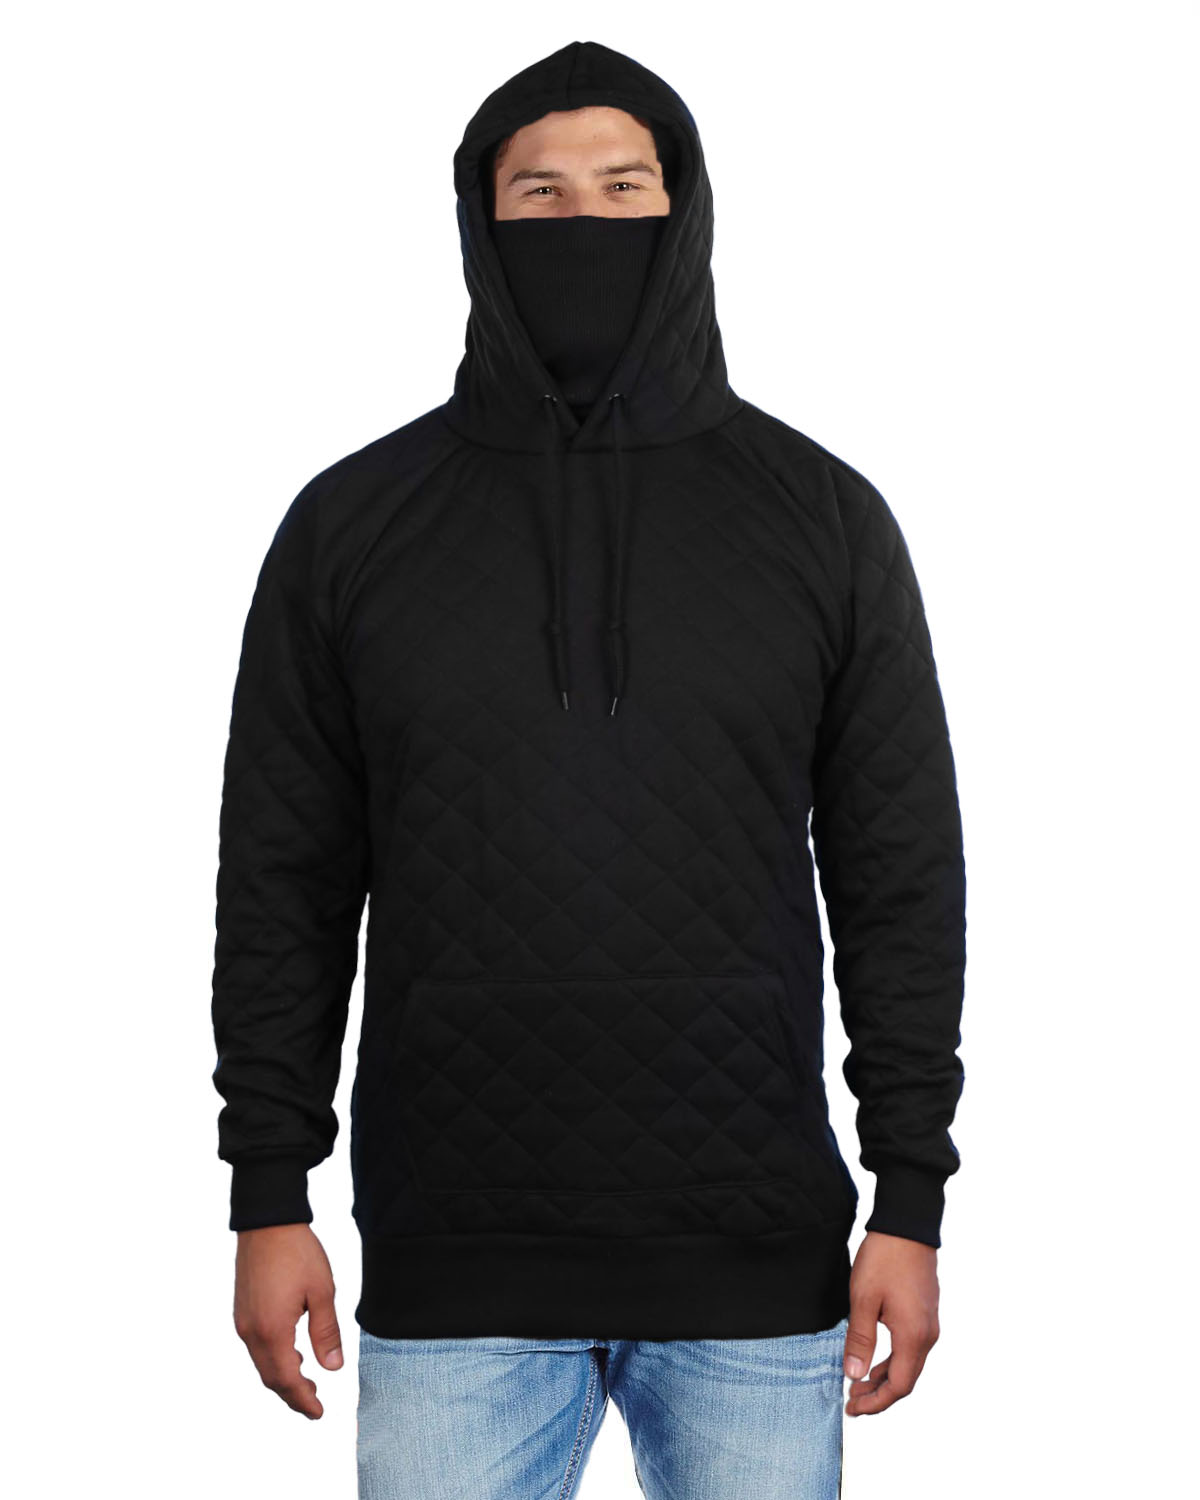 Find great deals on eBay for ninja hoodie. Shop with confidence.